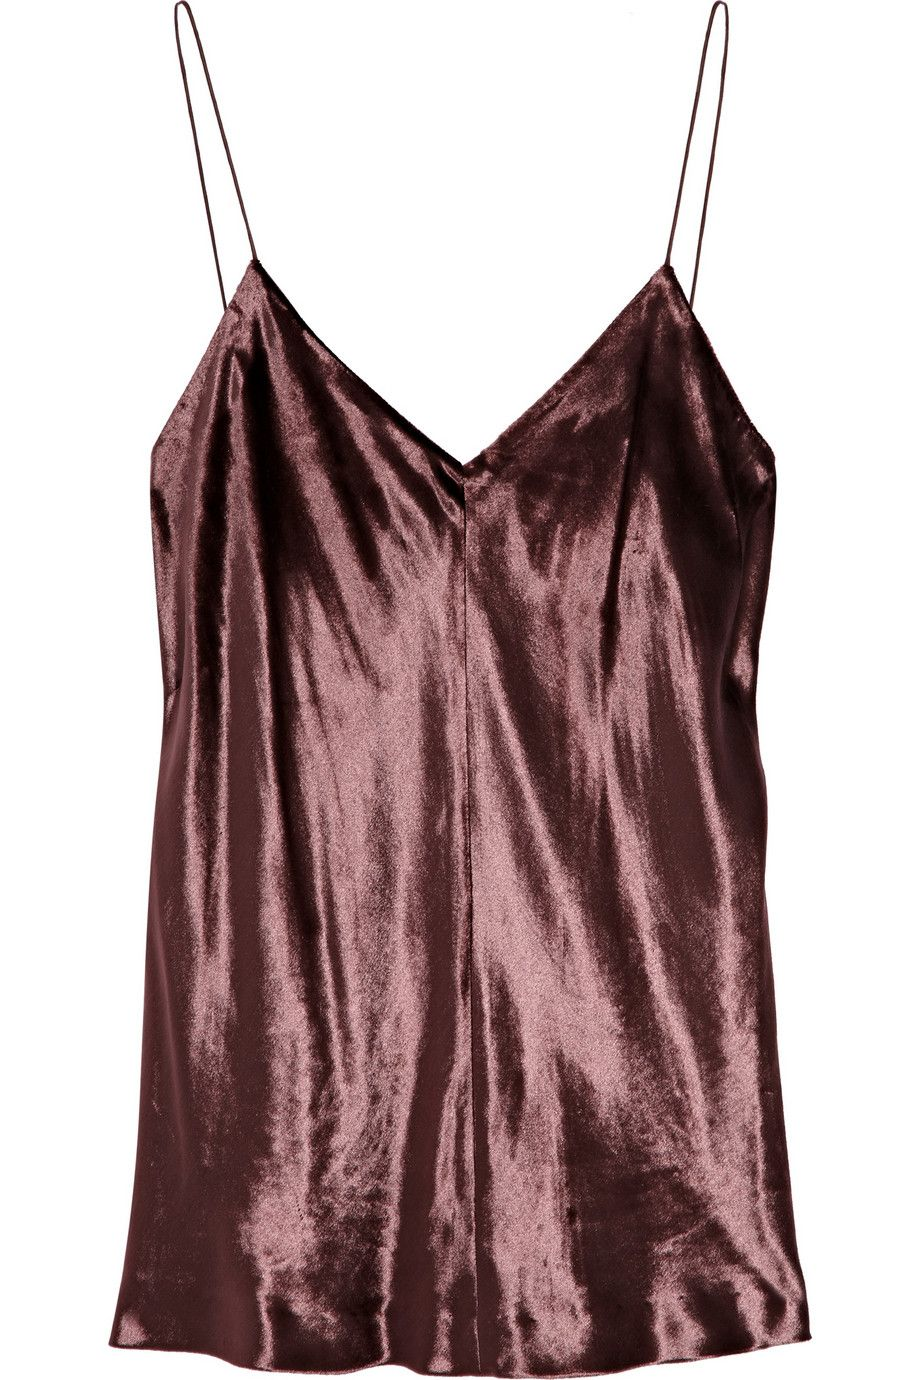 Panne-velvet camisole by T by Alexander Wang